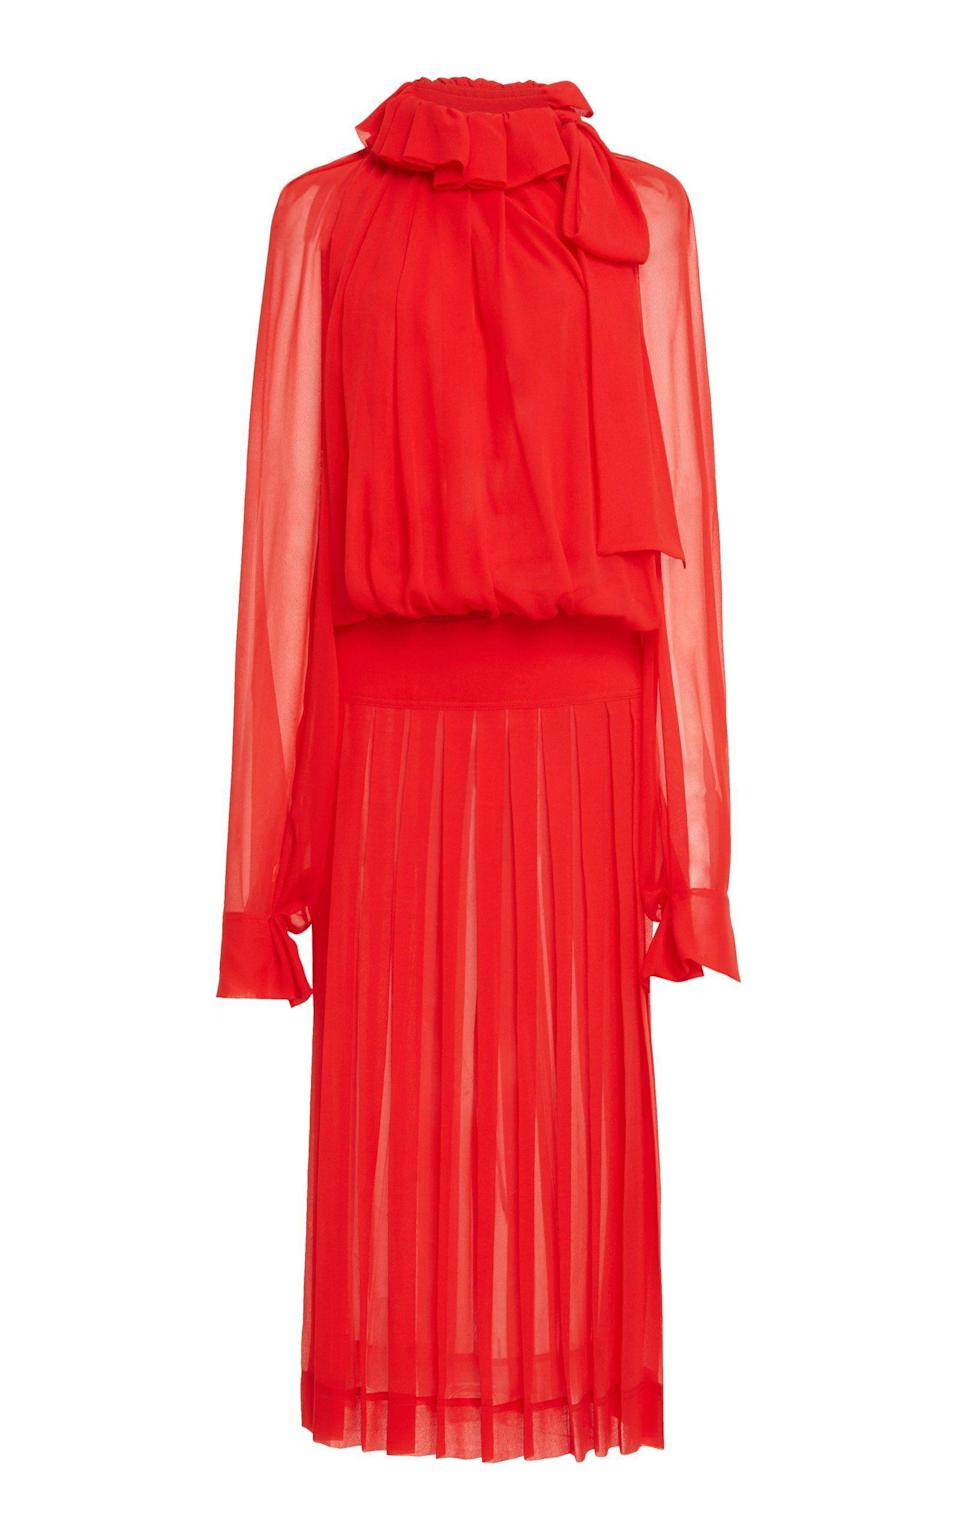 """<p><strong>Victoria Beckham</strong></p><p>modaoperandi.com</p><p><strong>$1650.00</strong></p><p><a href=""""https://go.redirectingat.com?id=74968X1596630&url=https%3A%2F%2Fwww.modaoperandi.com%2Fwomen%2Fp%2Fvictoria-beckham%2Fdraped-gathered-silk-midi-dress%2F490283&sref=https%3A%2F%2Fwww.harpersbazaar.com%2Fwedding%2Fbridal-fashion%2Fg36750122%2Fbest-mother-of-the-groom-dresses%2F"""" rel=""""nofollow noopener"""" target=""""_blank"""" data-ylk=""""slk:SHOP NOW"""" class=""""link rapid-noclick-resp"""">SHOP NOW</a></p><p>Victorian vibes are festive and feminine without feeling too fussy. Punch it up with metallic accessories and modern extras to avoid the ensemble becoming too costume or matchy-matchy. </p>"""